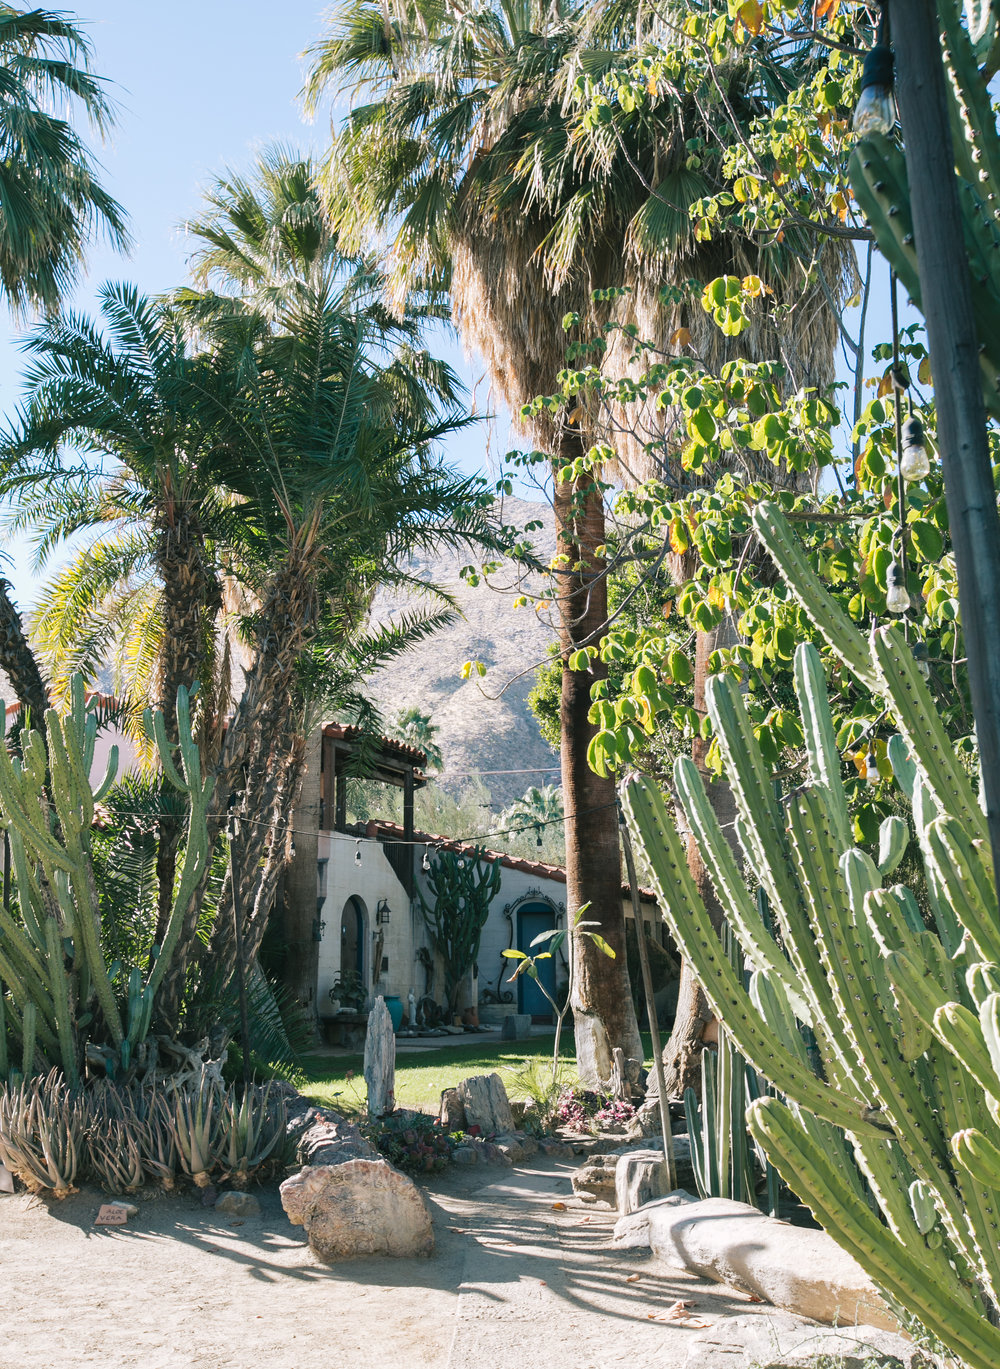 With The Exception Of The Central Cactarium, The Rest Of Moorten Botanical  Garden Was Outdoor, Taking Full Advantage Of The Palm Springs Sun.